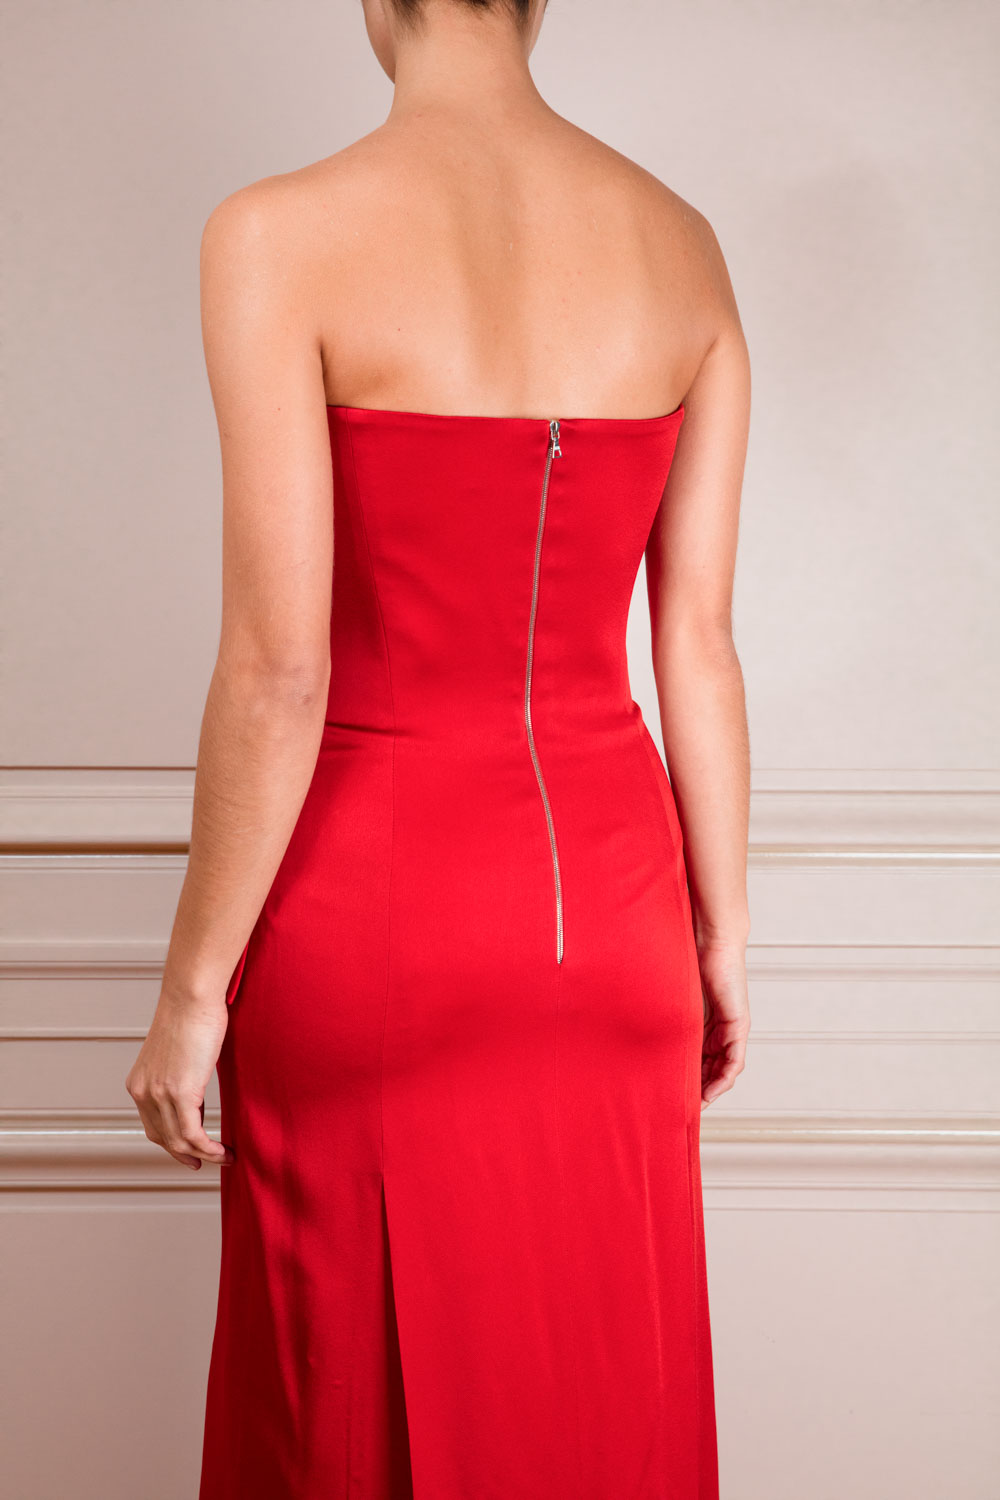 Scarlet bustier coat-dress with integrated satin corset